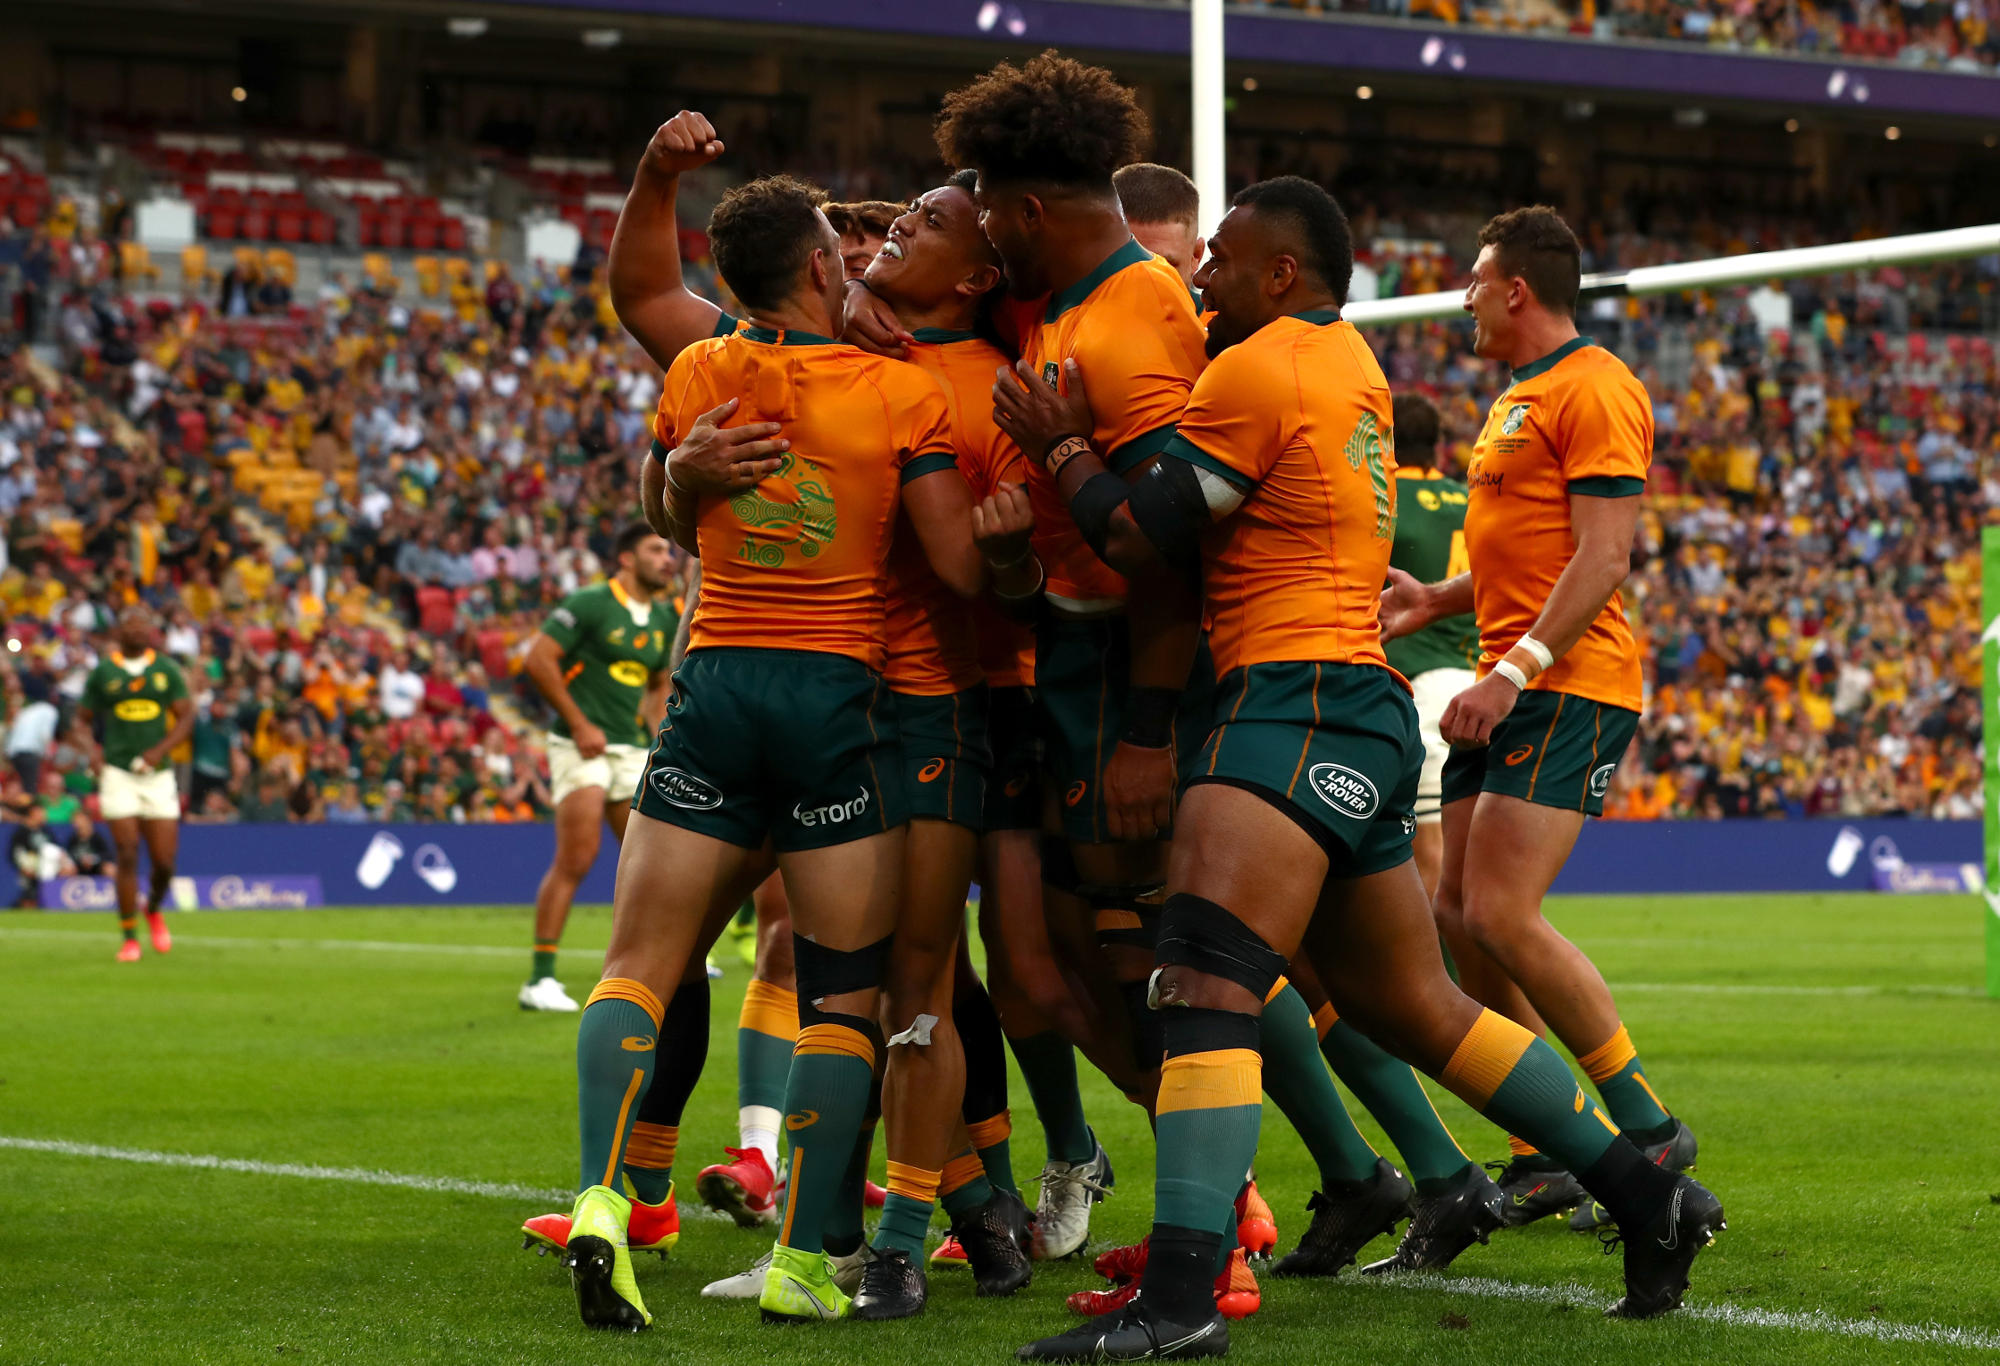 Len Ikitau of the Wallabies celebrates after scoring a try